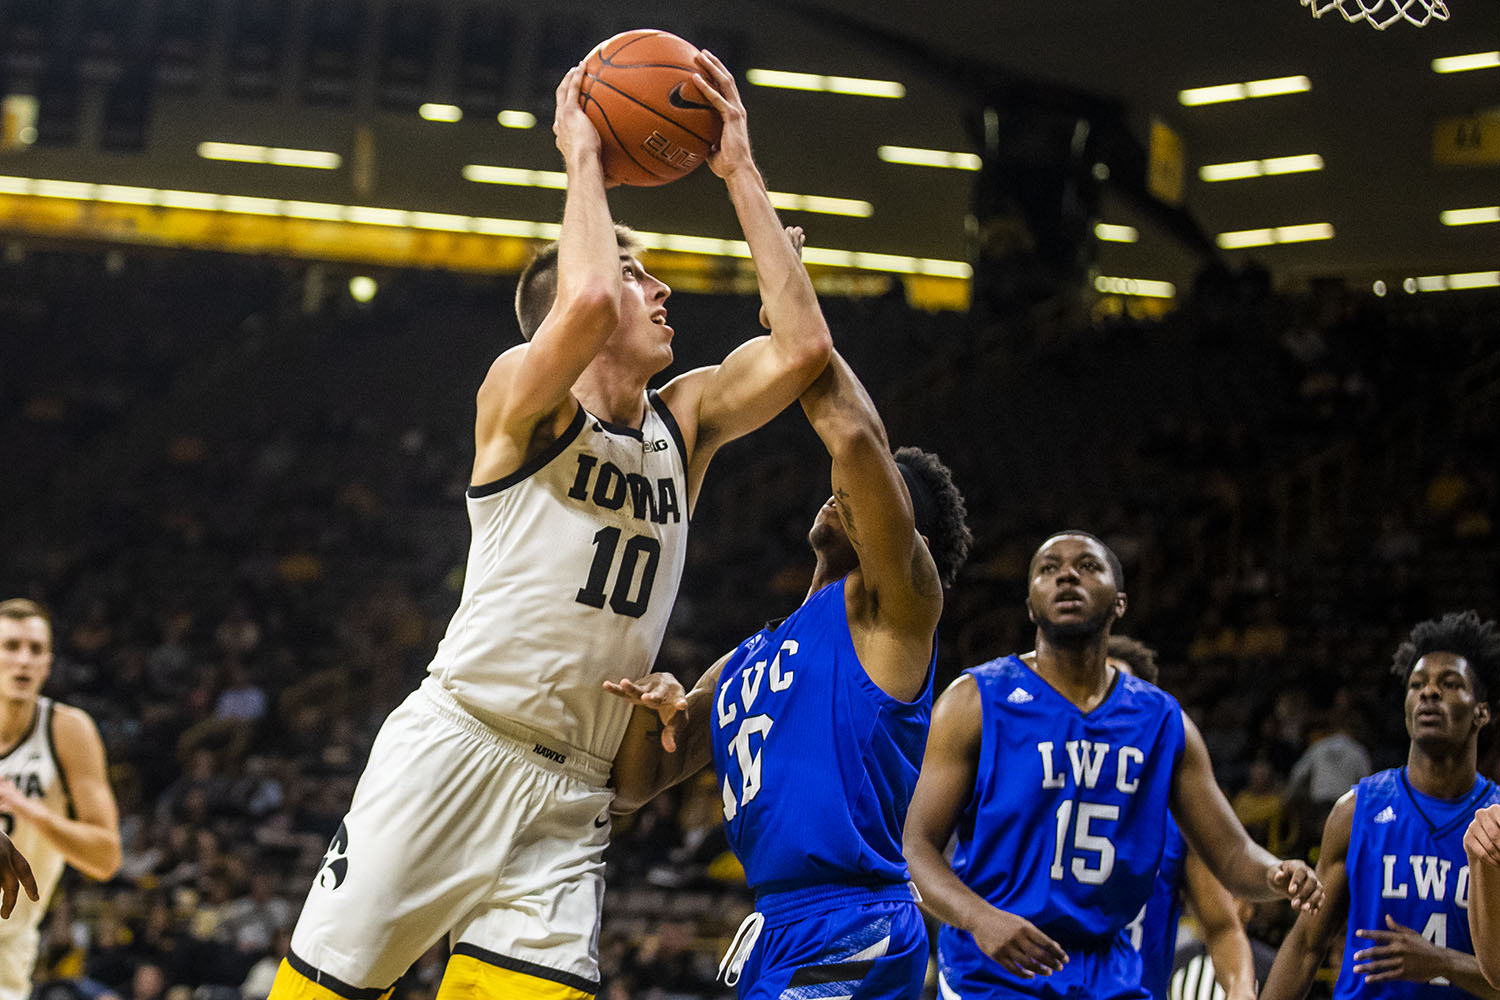 Iowa guard Joe Wieskamp prepares to shoot the ball during the men's basketball game against Lindsey Wilson College at Carver-Hawkeye Arena on Monday, November 4, 2019.